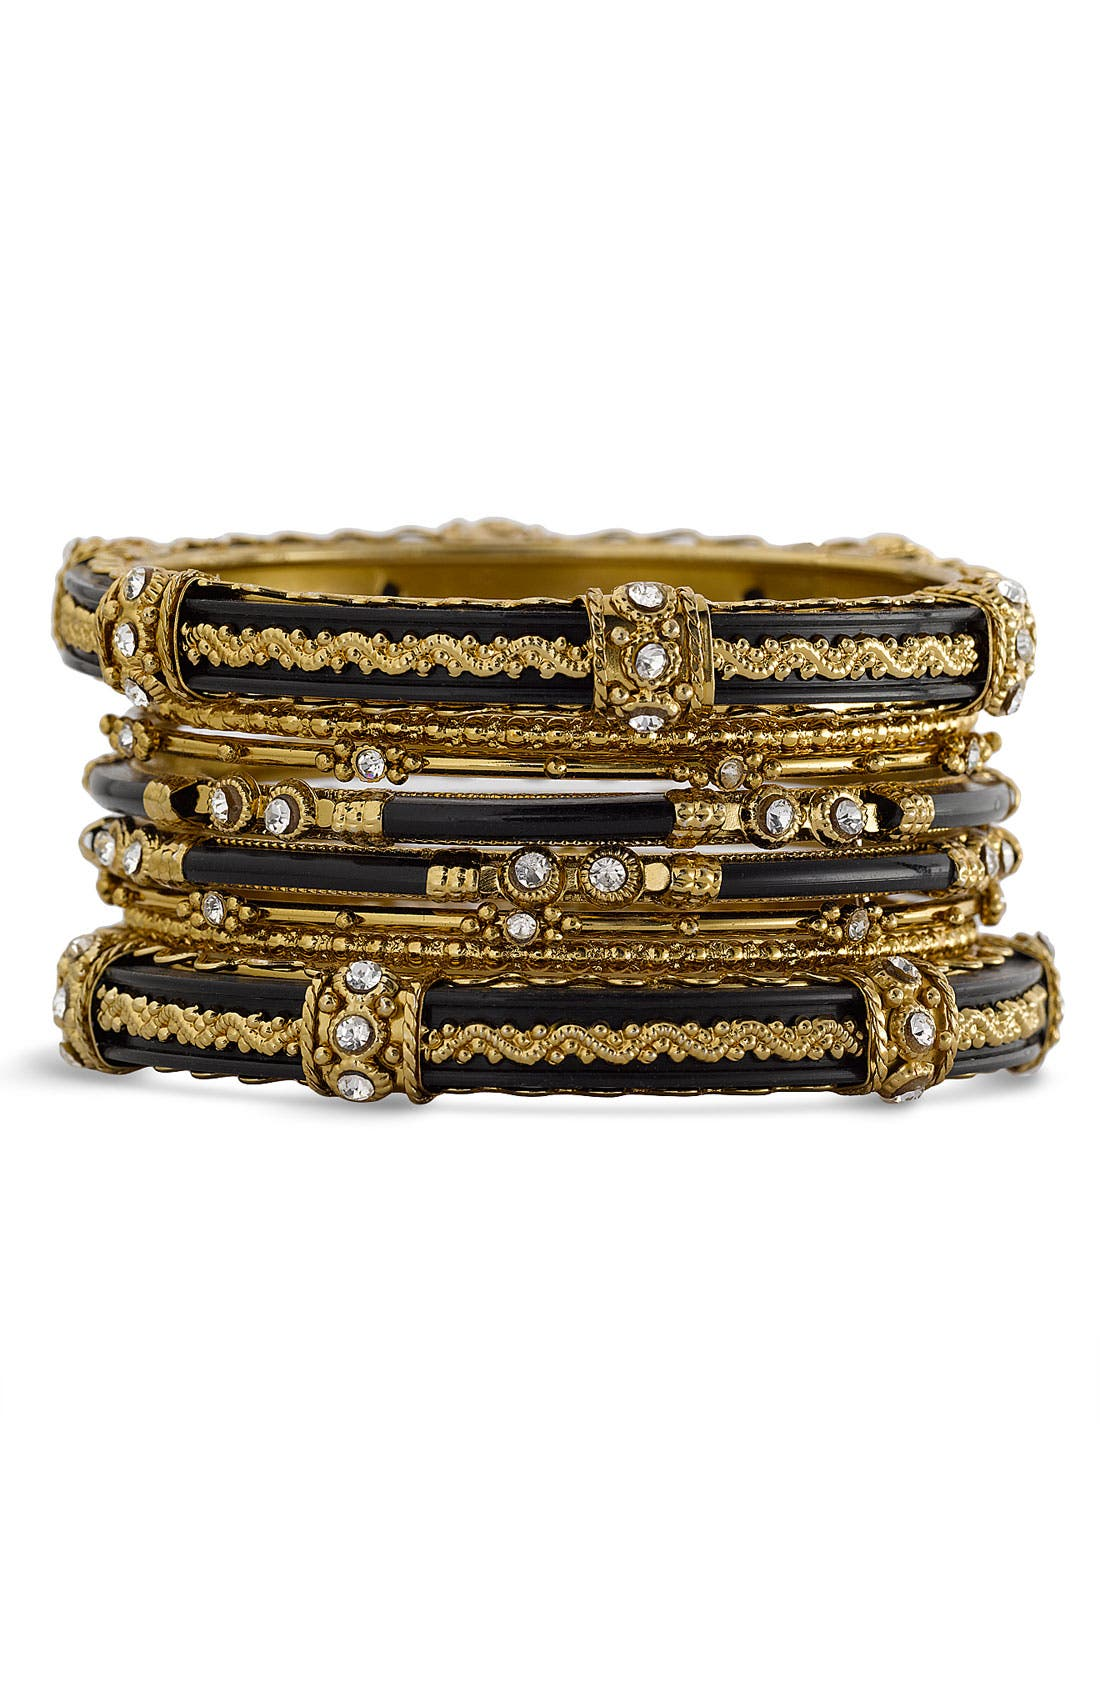 Alternate Image 1 Selected - Spring Street 'India' Bangles (Set of 8)